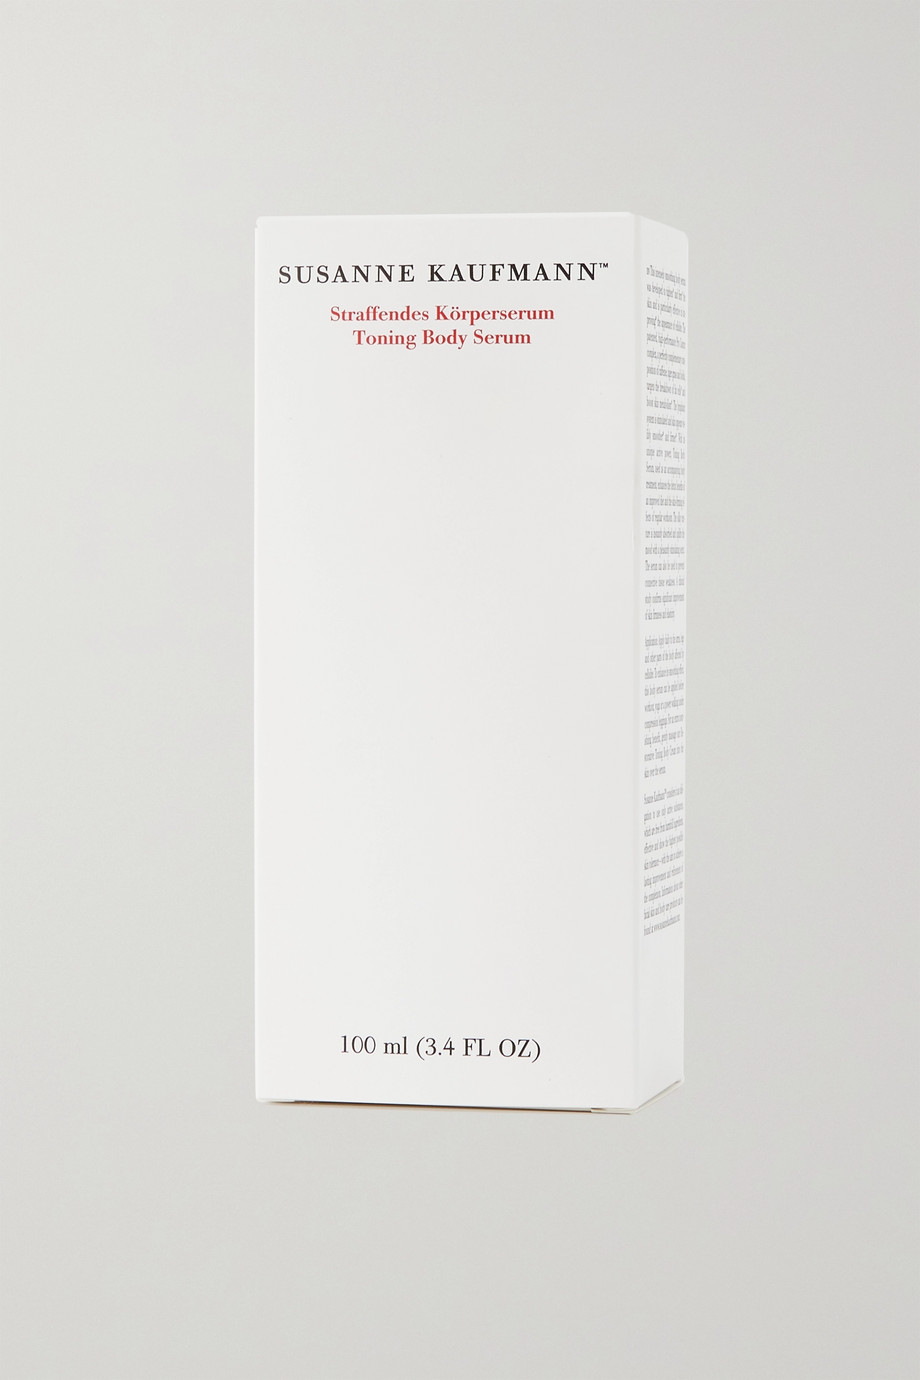 Susanne Kaufmann Toning Body Serum, 100ml